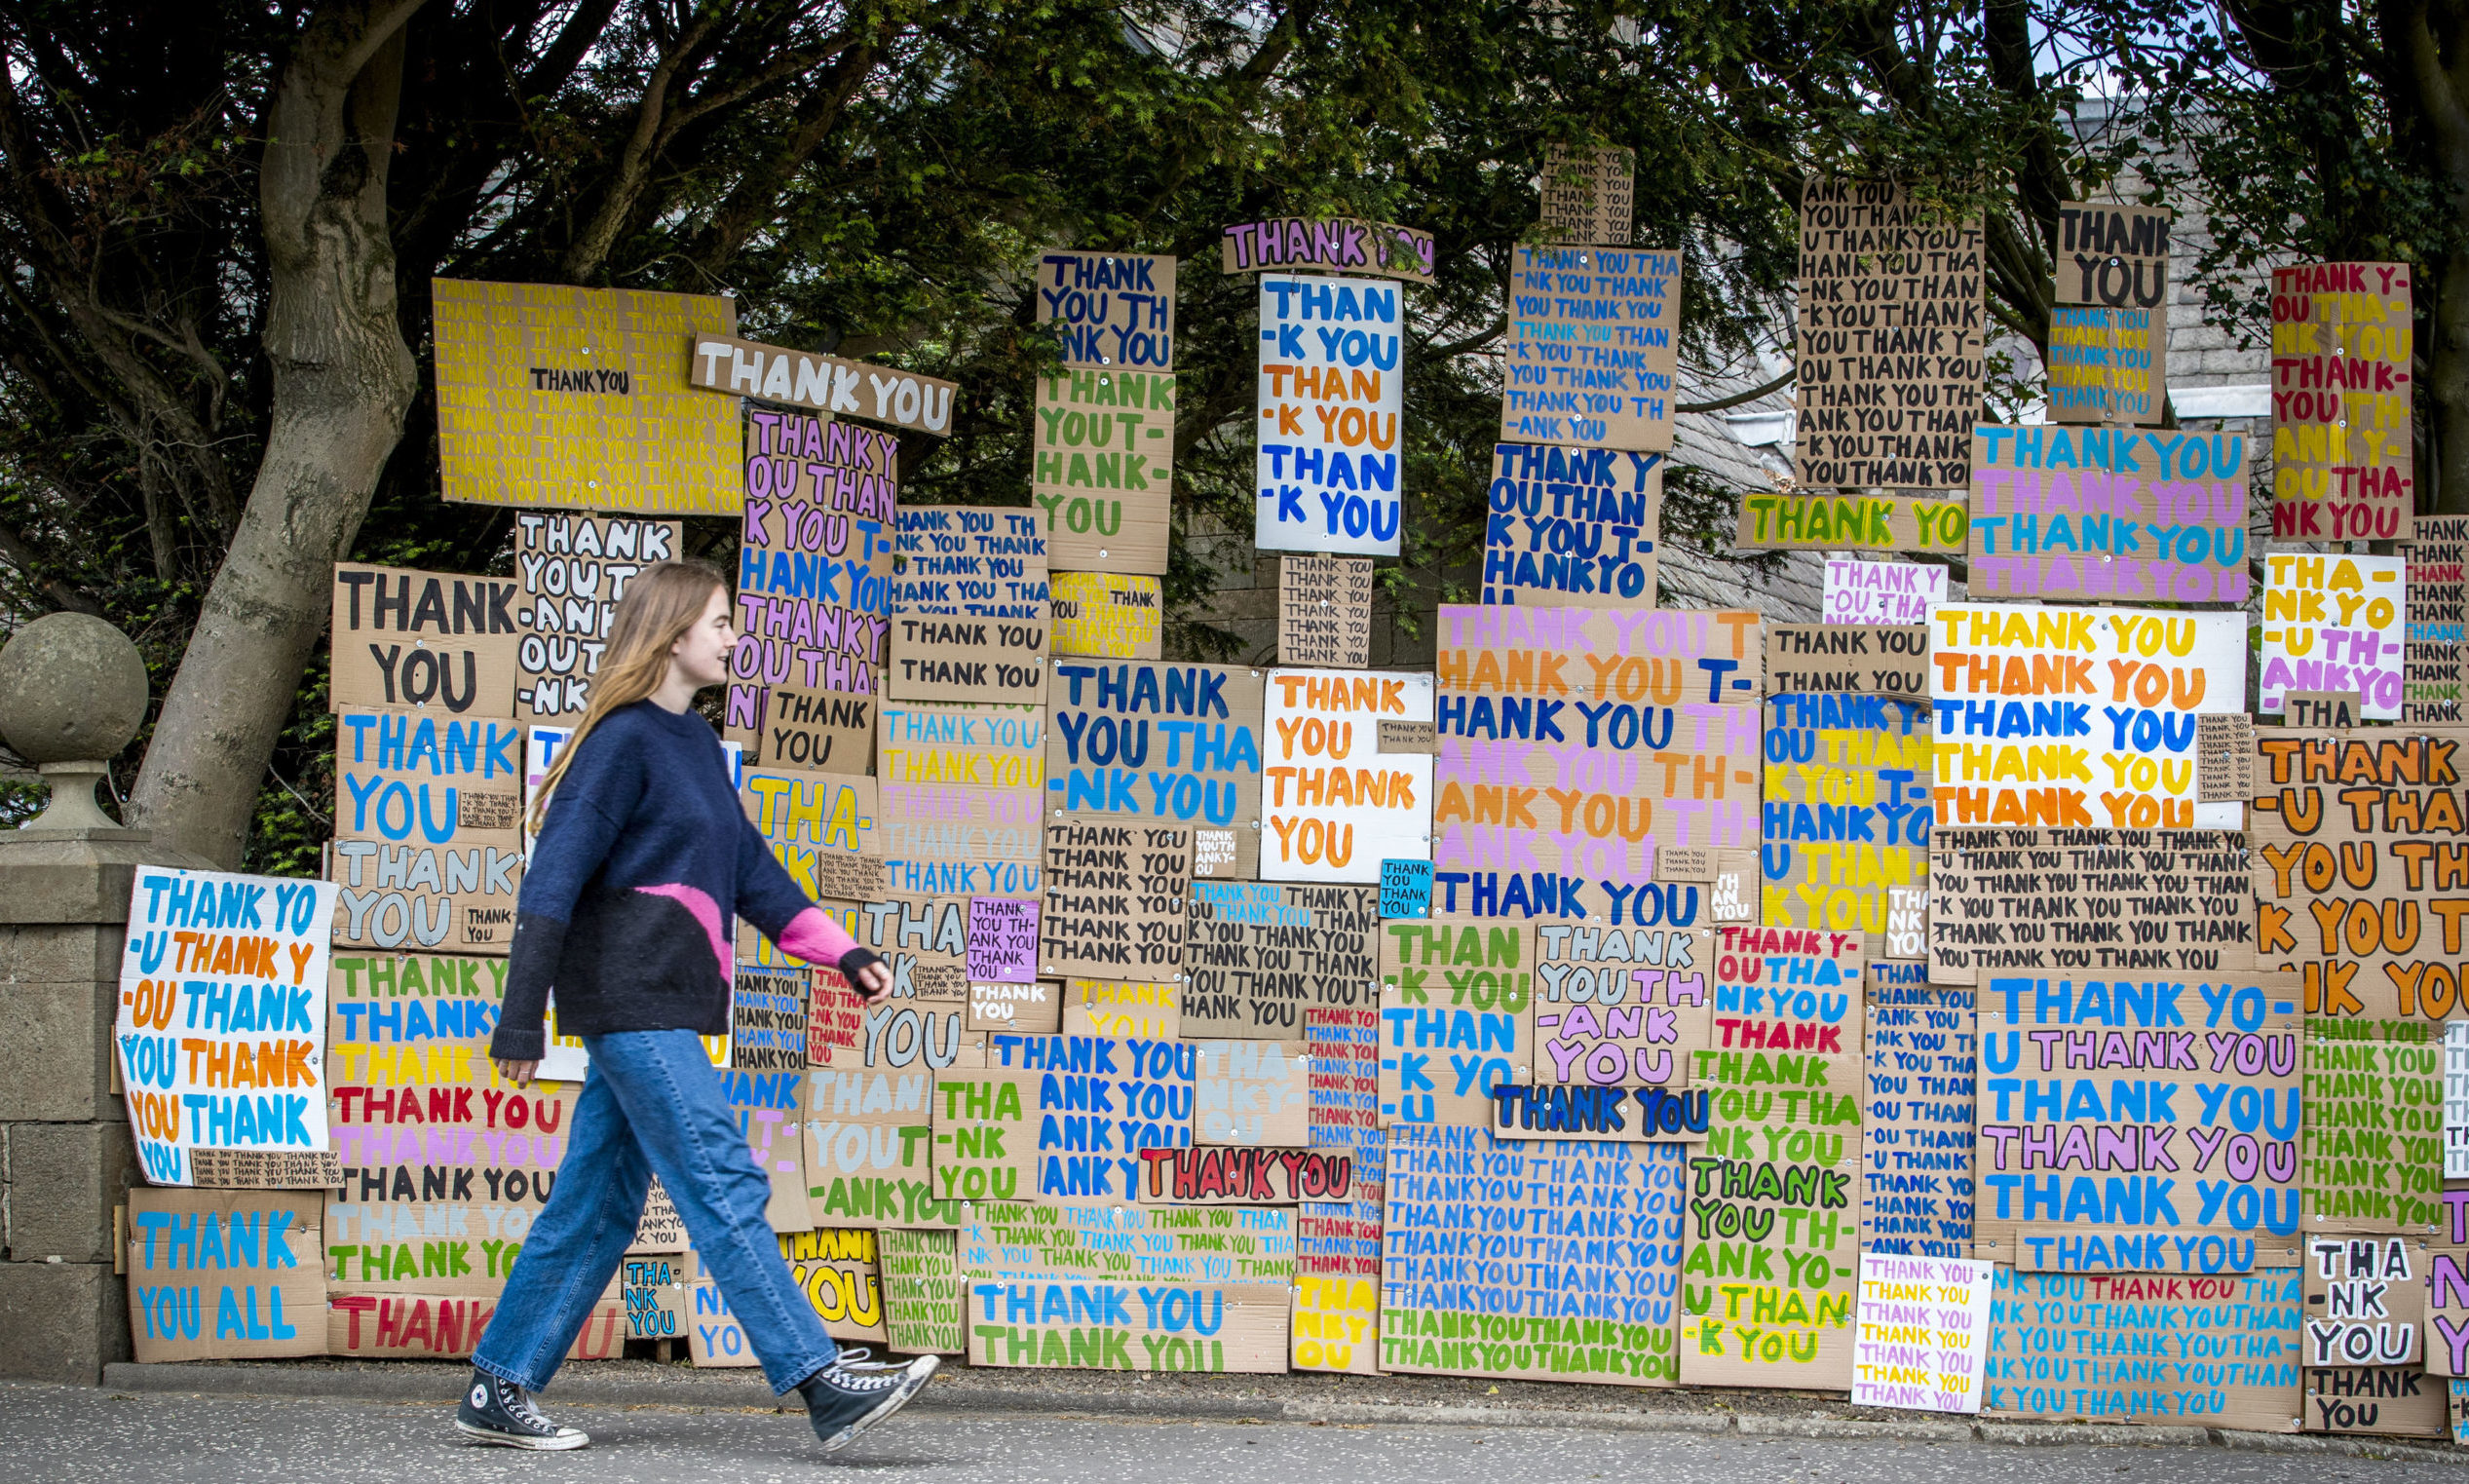 """Hermione Wilson walks past a new artwork at Jupiter Artland, Edinburgh, created as a tribute to the NHS titled """"A Thousand Thank Yous"""" originally devised by the late Allan Kaprow which consists of colourful painted messages on cardboard and has been directed remotely by London-based artist Peter Liversidge. PA Photo. Picture date: Monday June 8, 2020. The Jupiter Artland sculpture park recently re-opened to local members as Scotland continues in phase one of the Scottish Government's plan for gradually lifting lockdown. See PA story HEALTH Coronavirus. Photo credit should read: Jane Barlow/PA Wire"""